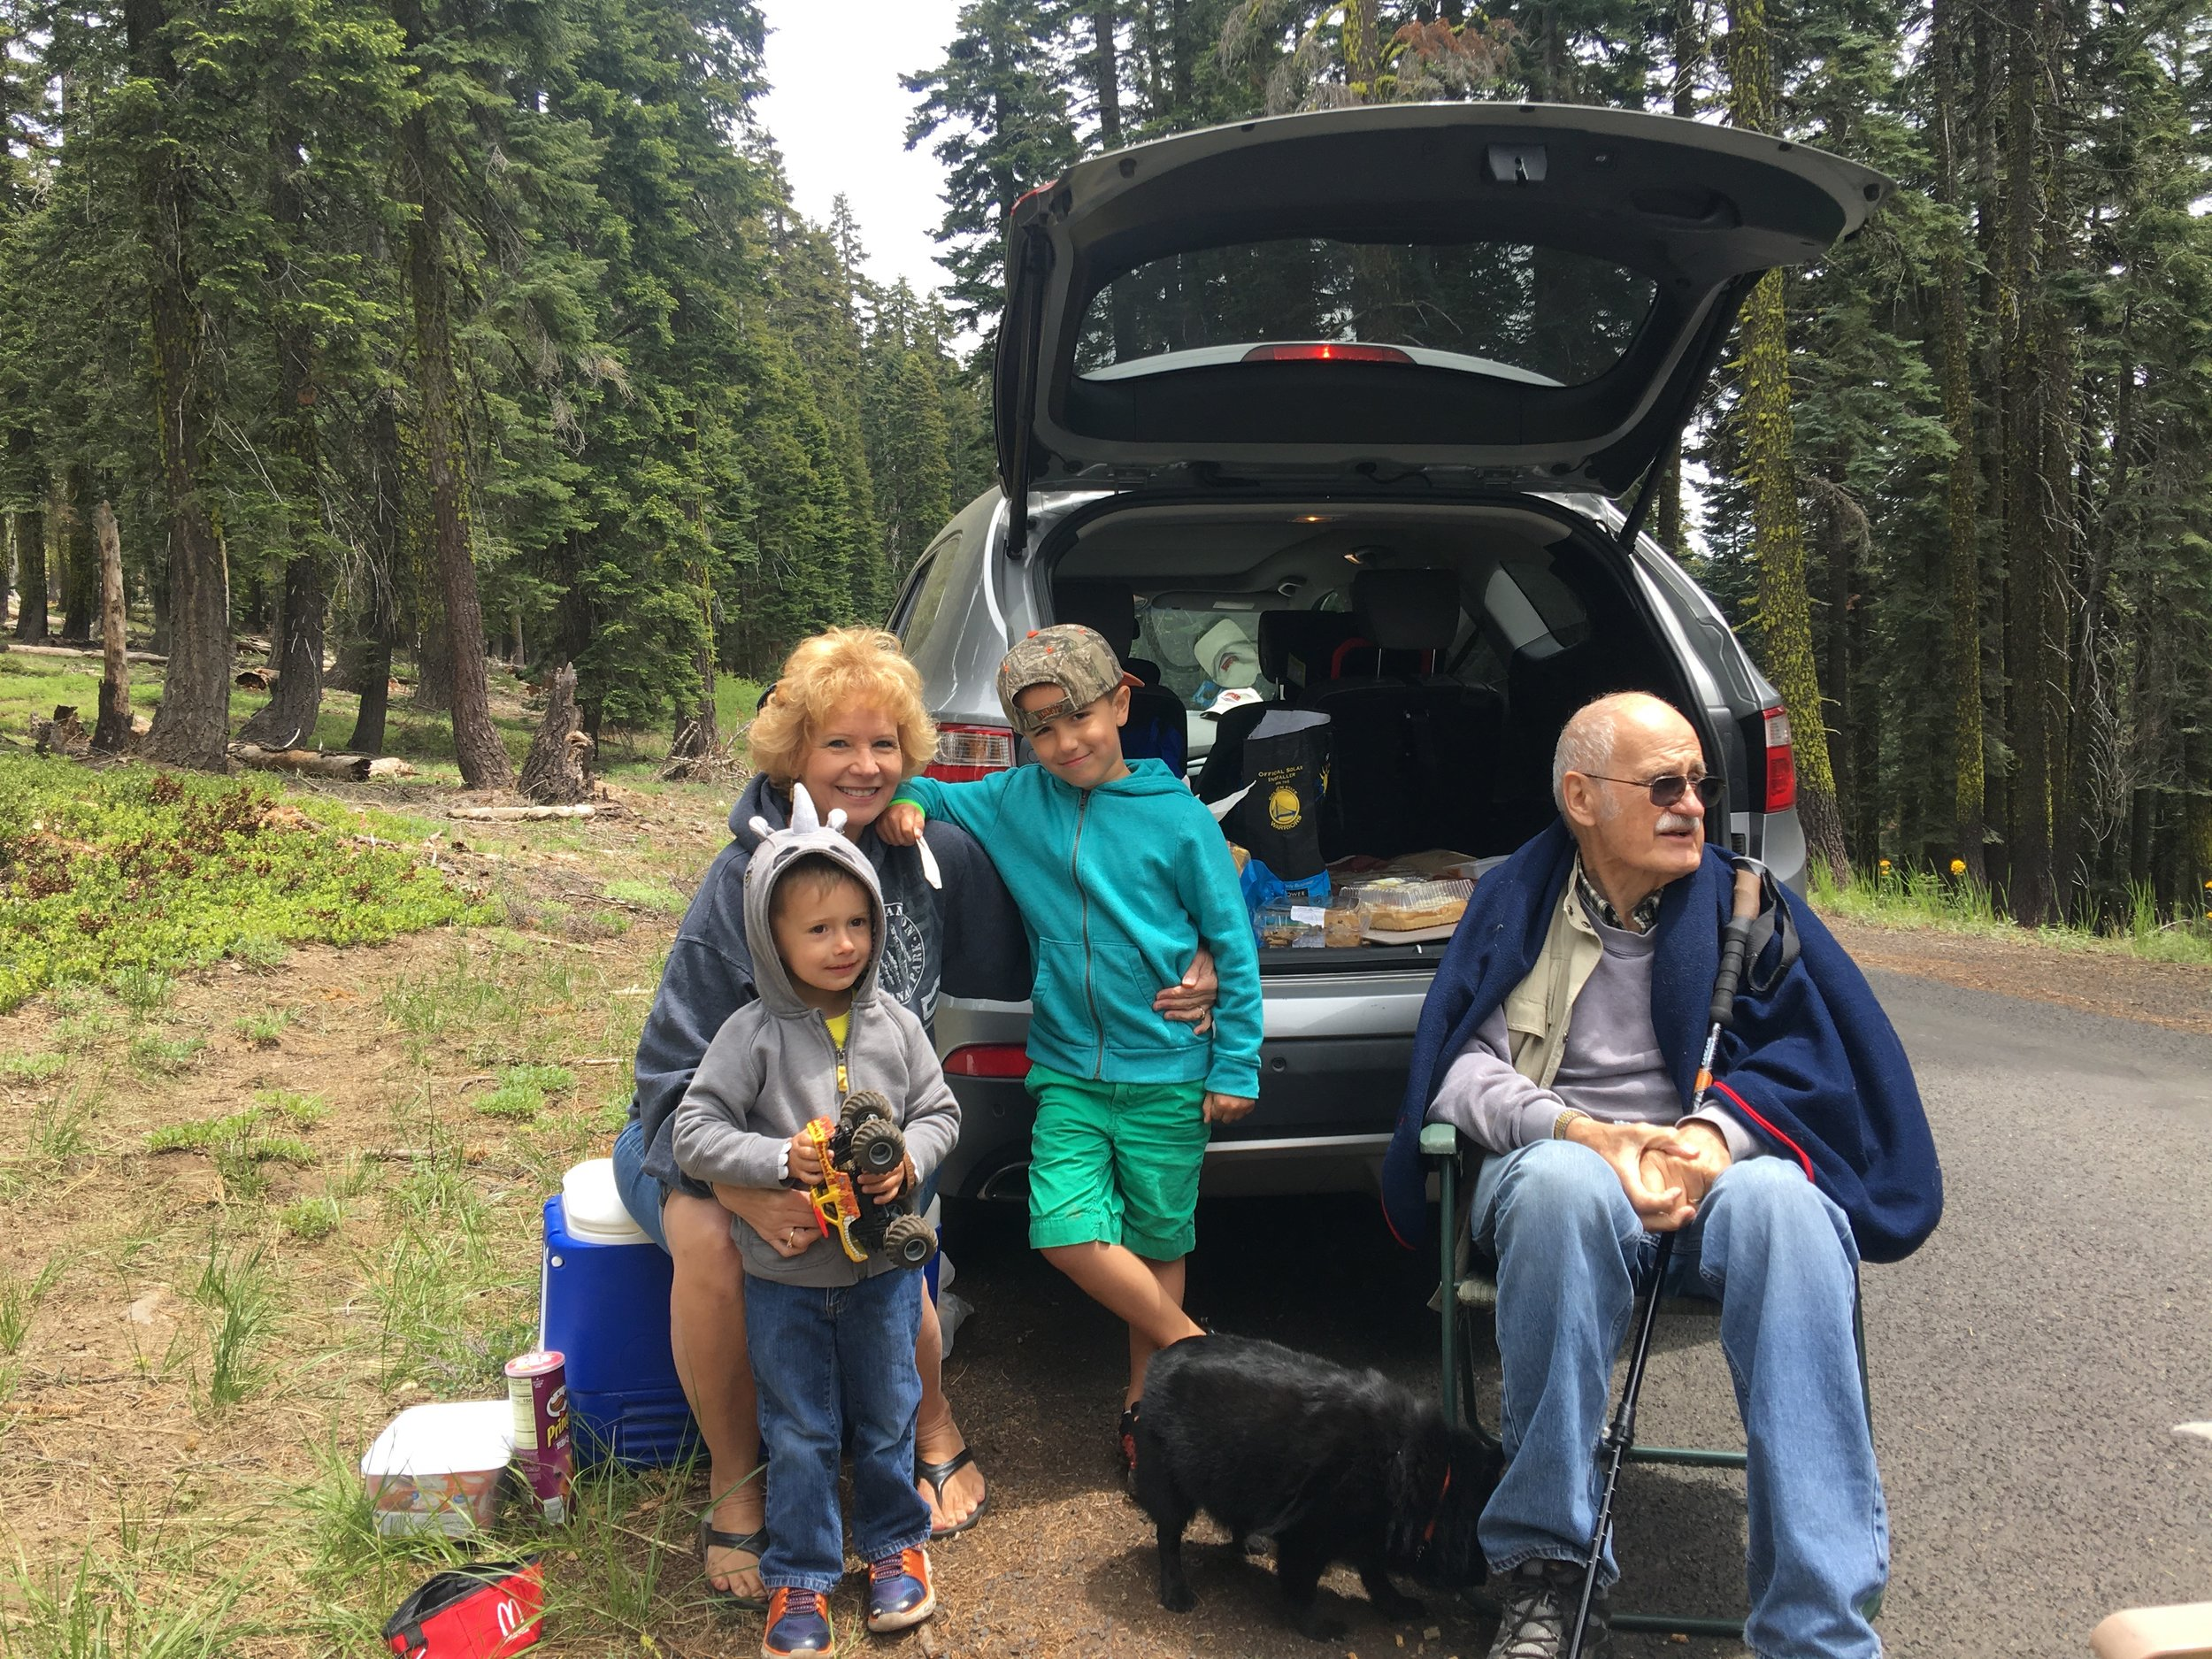 This couple whose son is hiking the trail this year had brought their grandsons to this trailhead in hopes of seeing some hikers. In their car was soda, chips, fruit and warm banana bread. They plan on returning here over the 4th of July and cooking breakfast for any hikers who are passing thru.